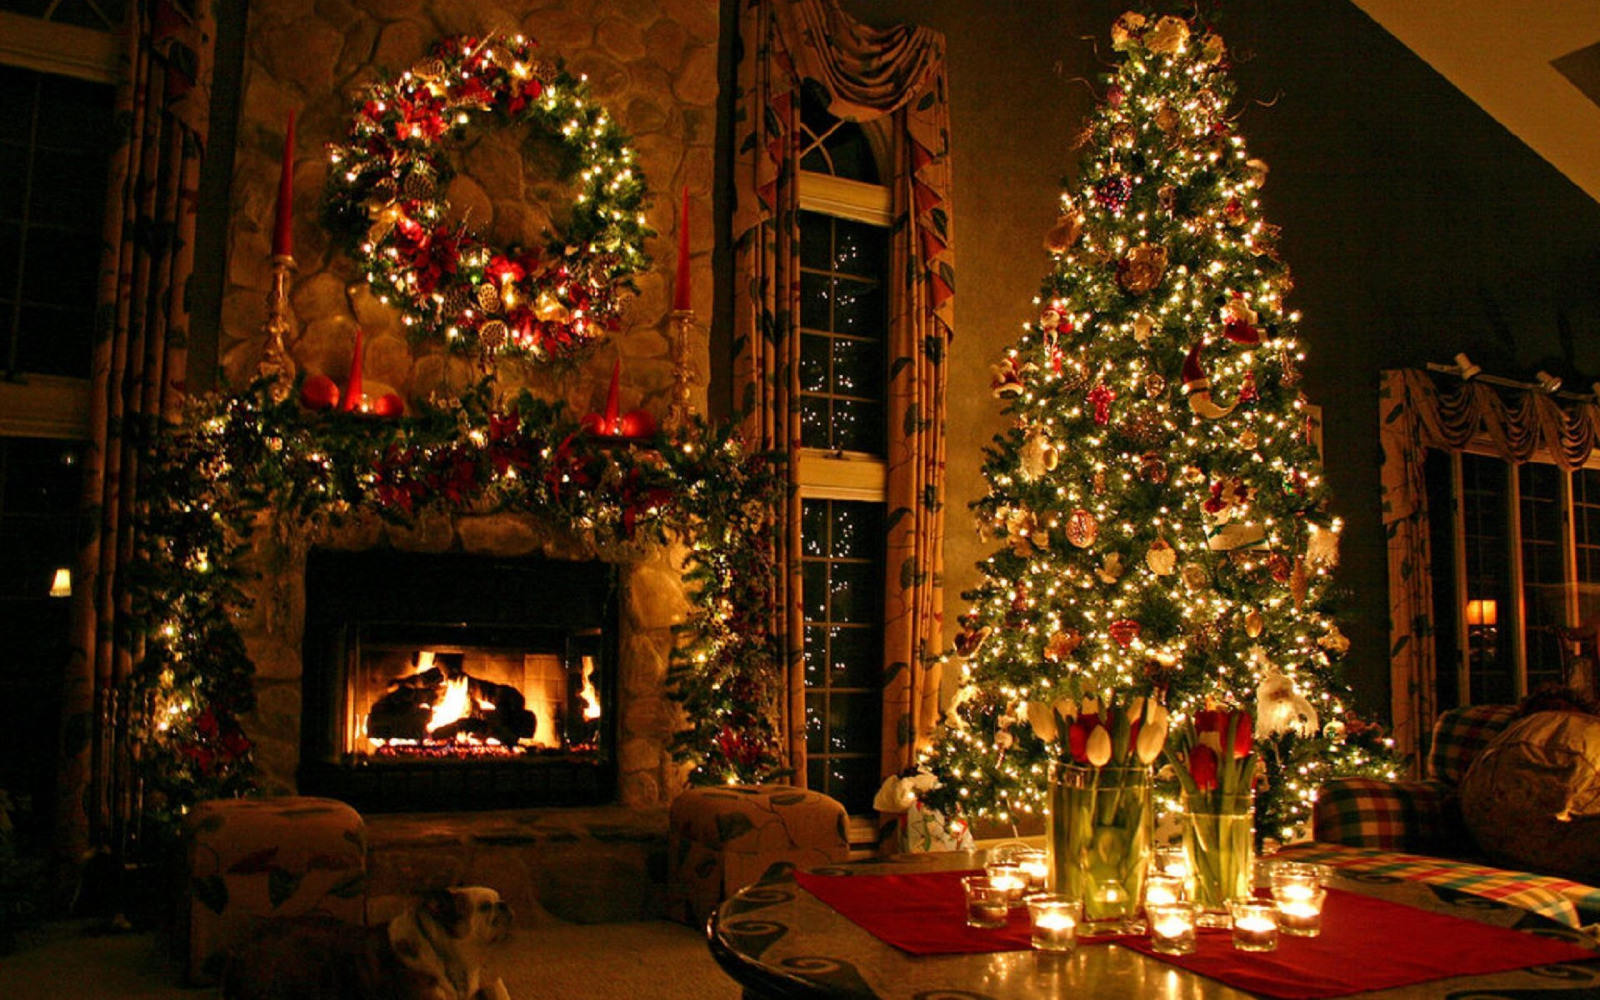 christmas-wallpaper-8.jpg